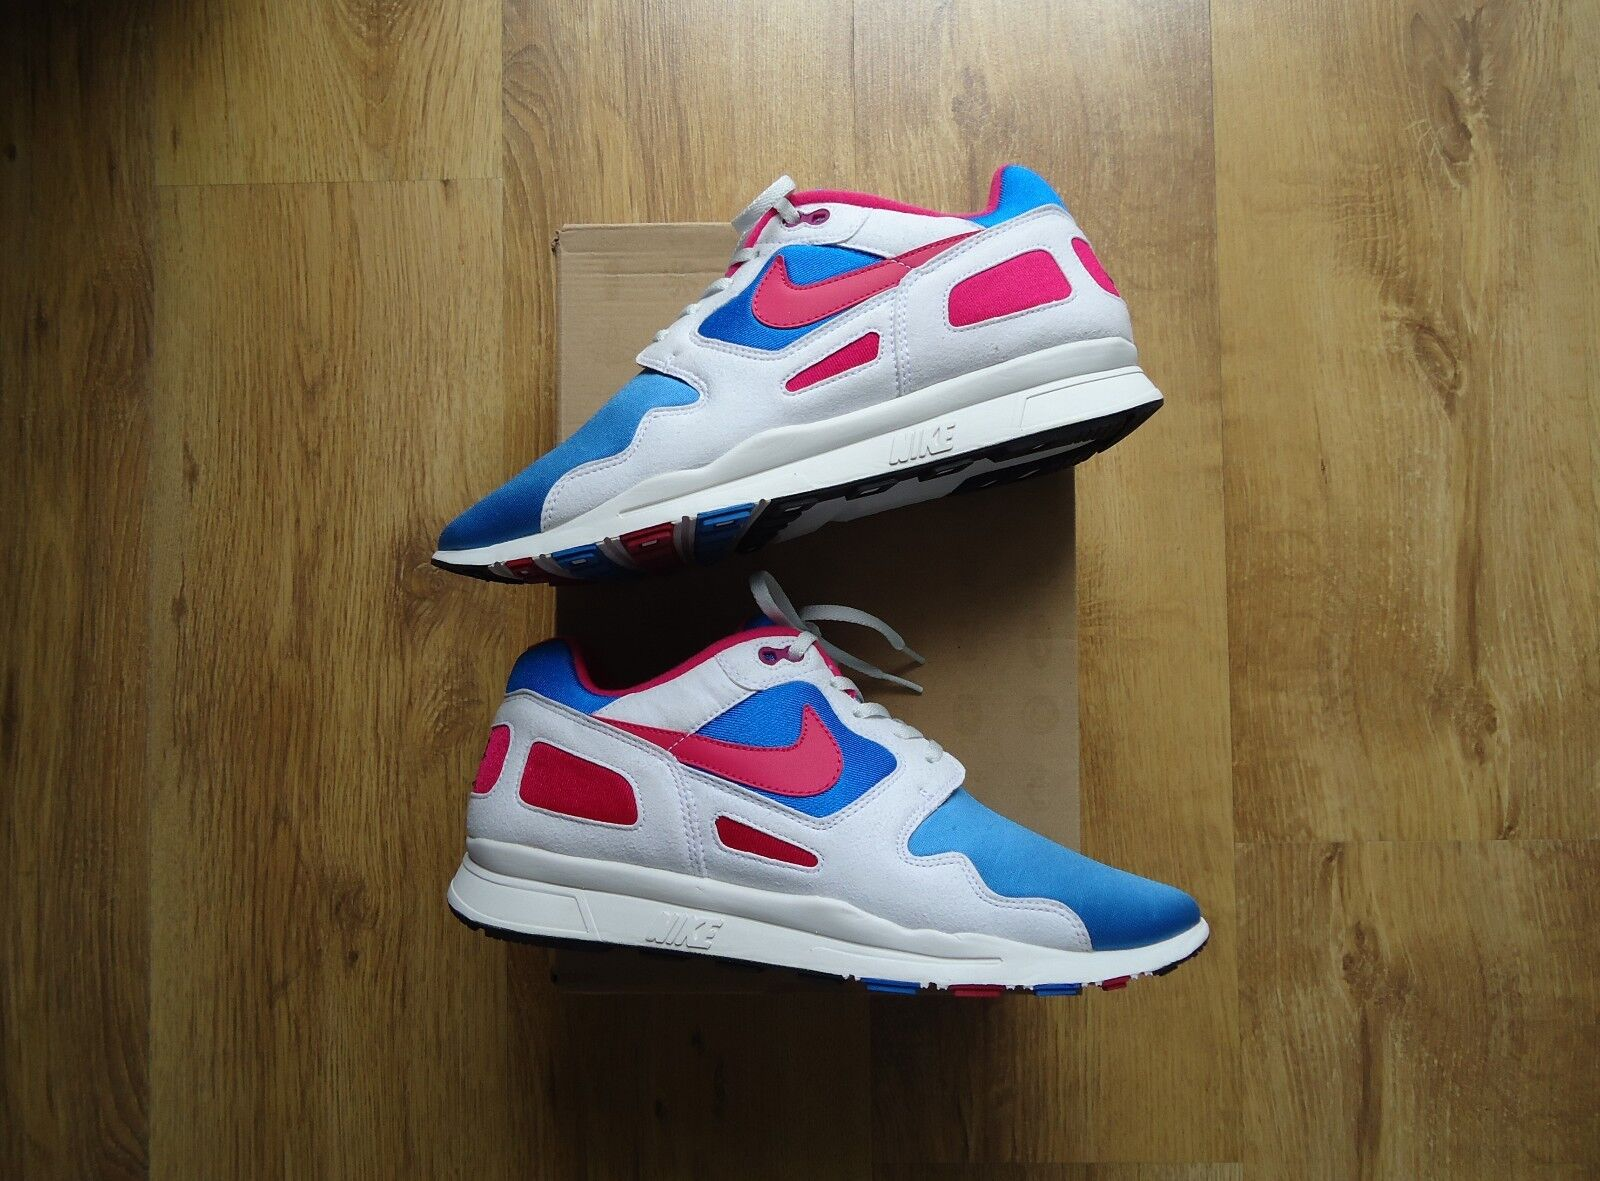 Nike Flow Cereza 2012 Raro corrojoores Air calor Kicks Zapatillas Coleccionistas